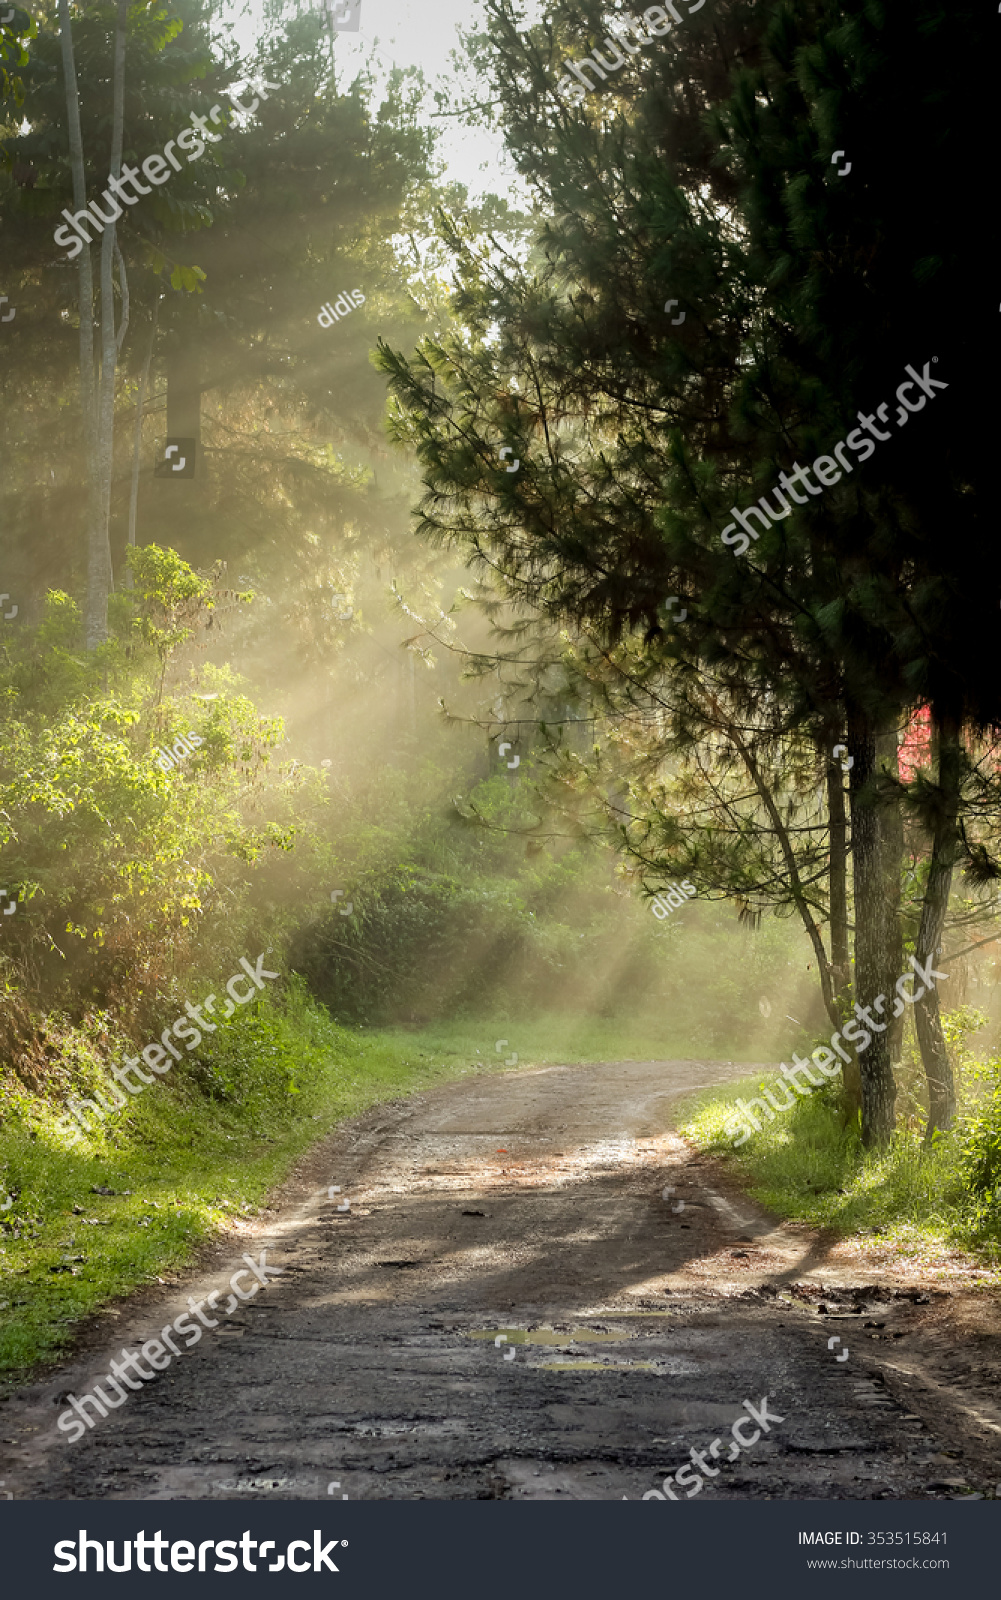 morning scenery rain forest sun casting stock photo (download now